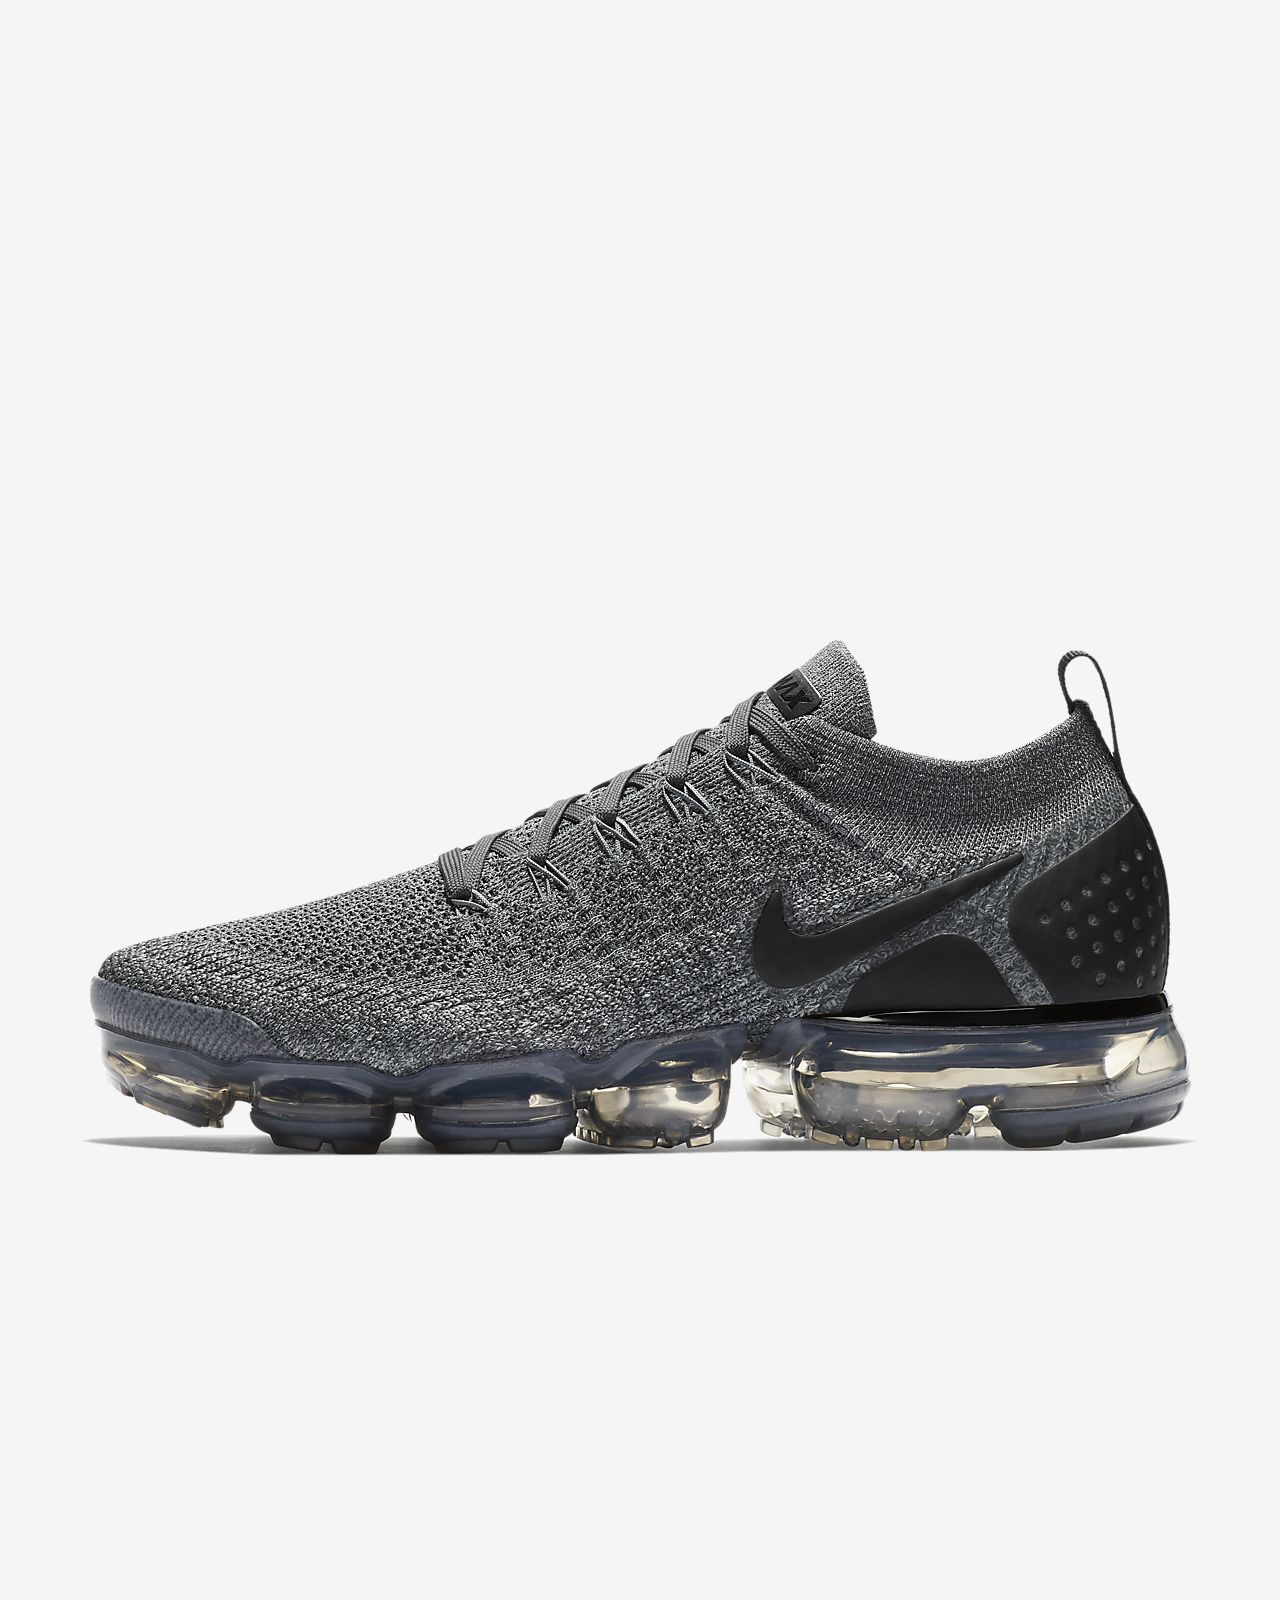 Nike Air Vapormax Flyknit 2 II Dark Grey Men Running Shoes Sneakers 942842002